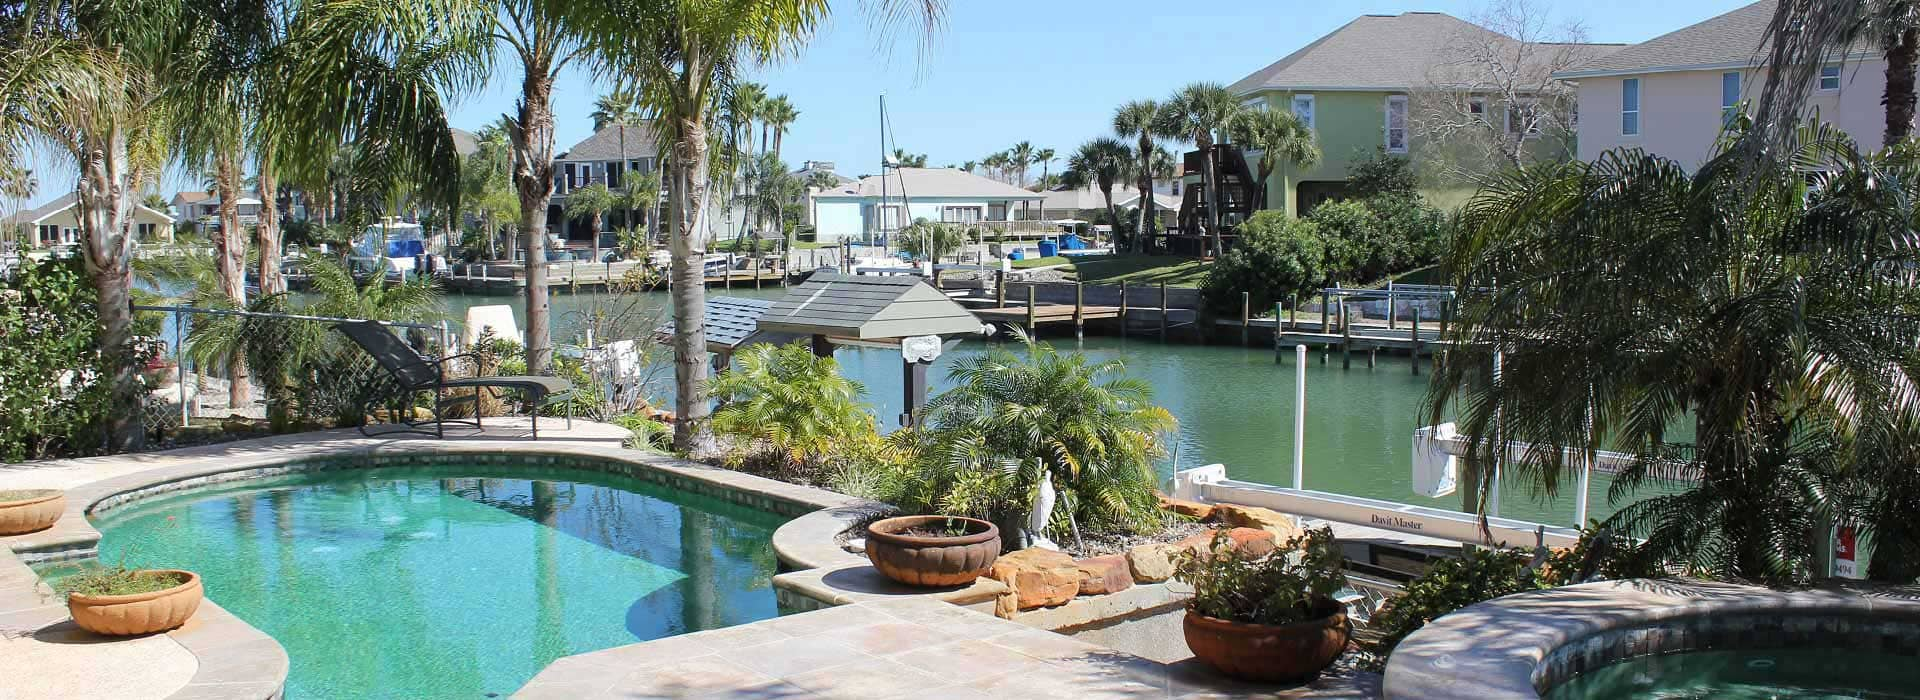 Rockport vacation rentals port aransas condos rentals for Fishing cabins for rent in texas